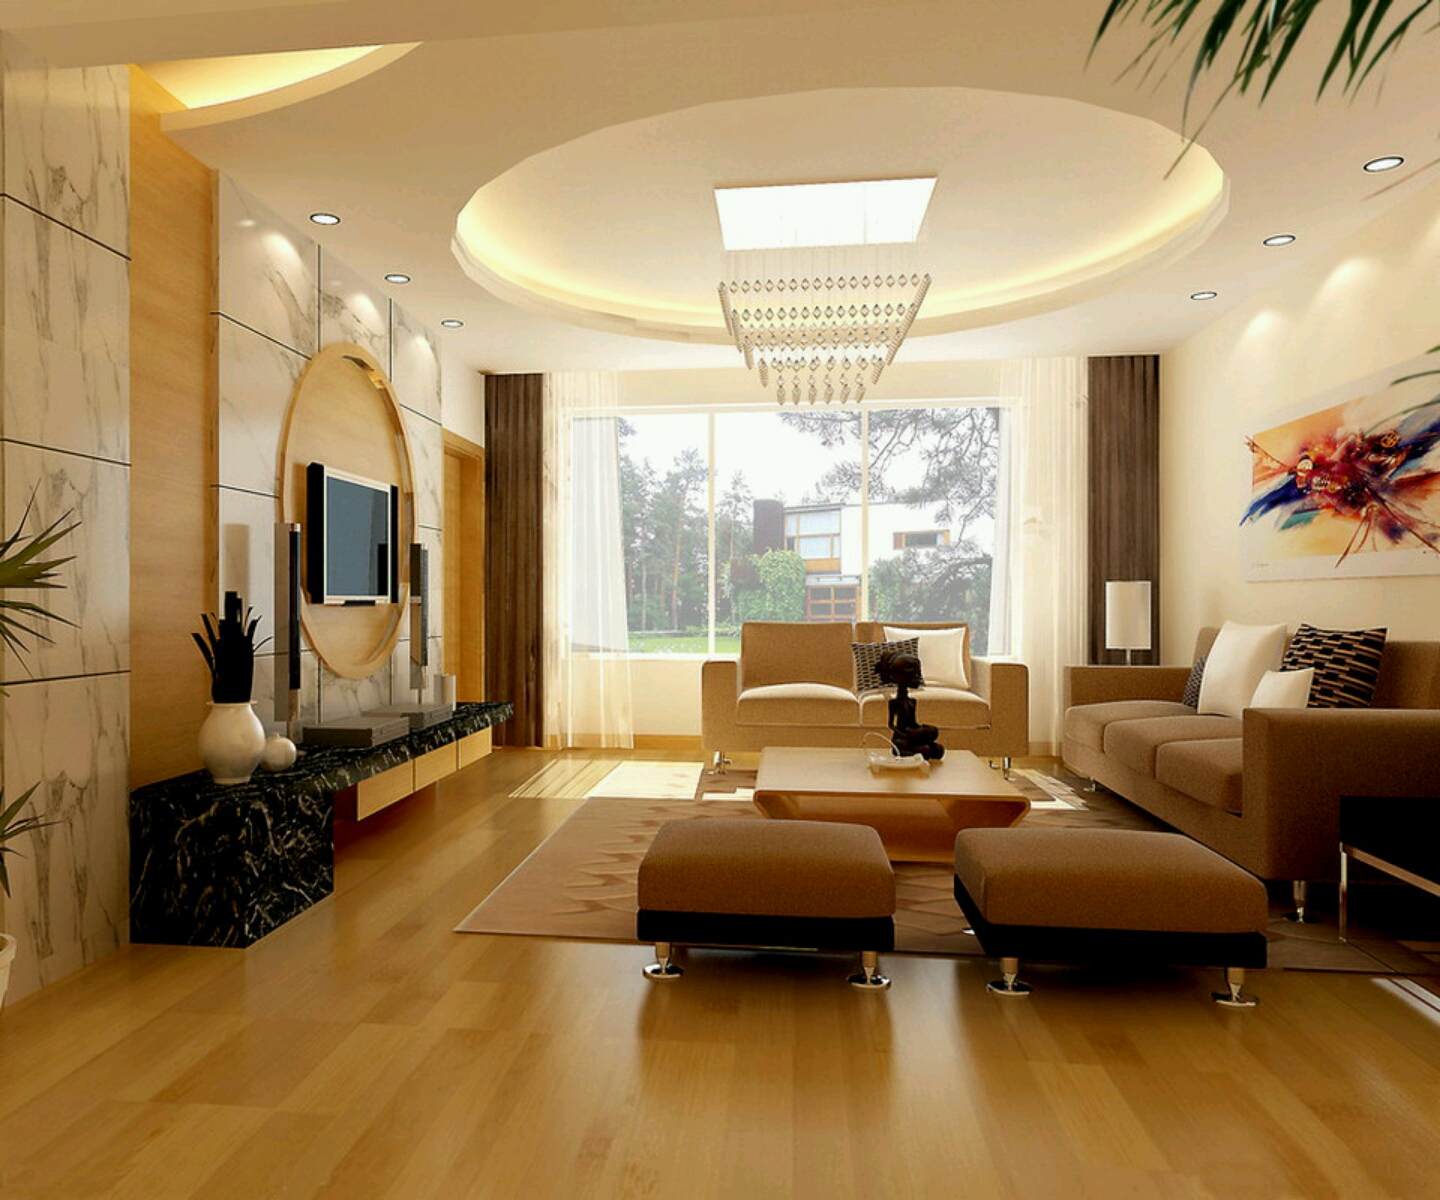 Modern interior decoration living rooms ceiling designs for Interior design my living room